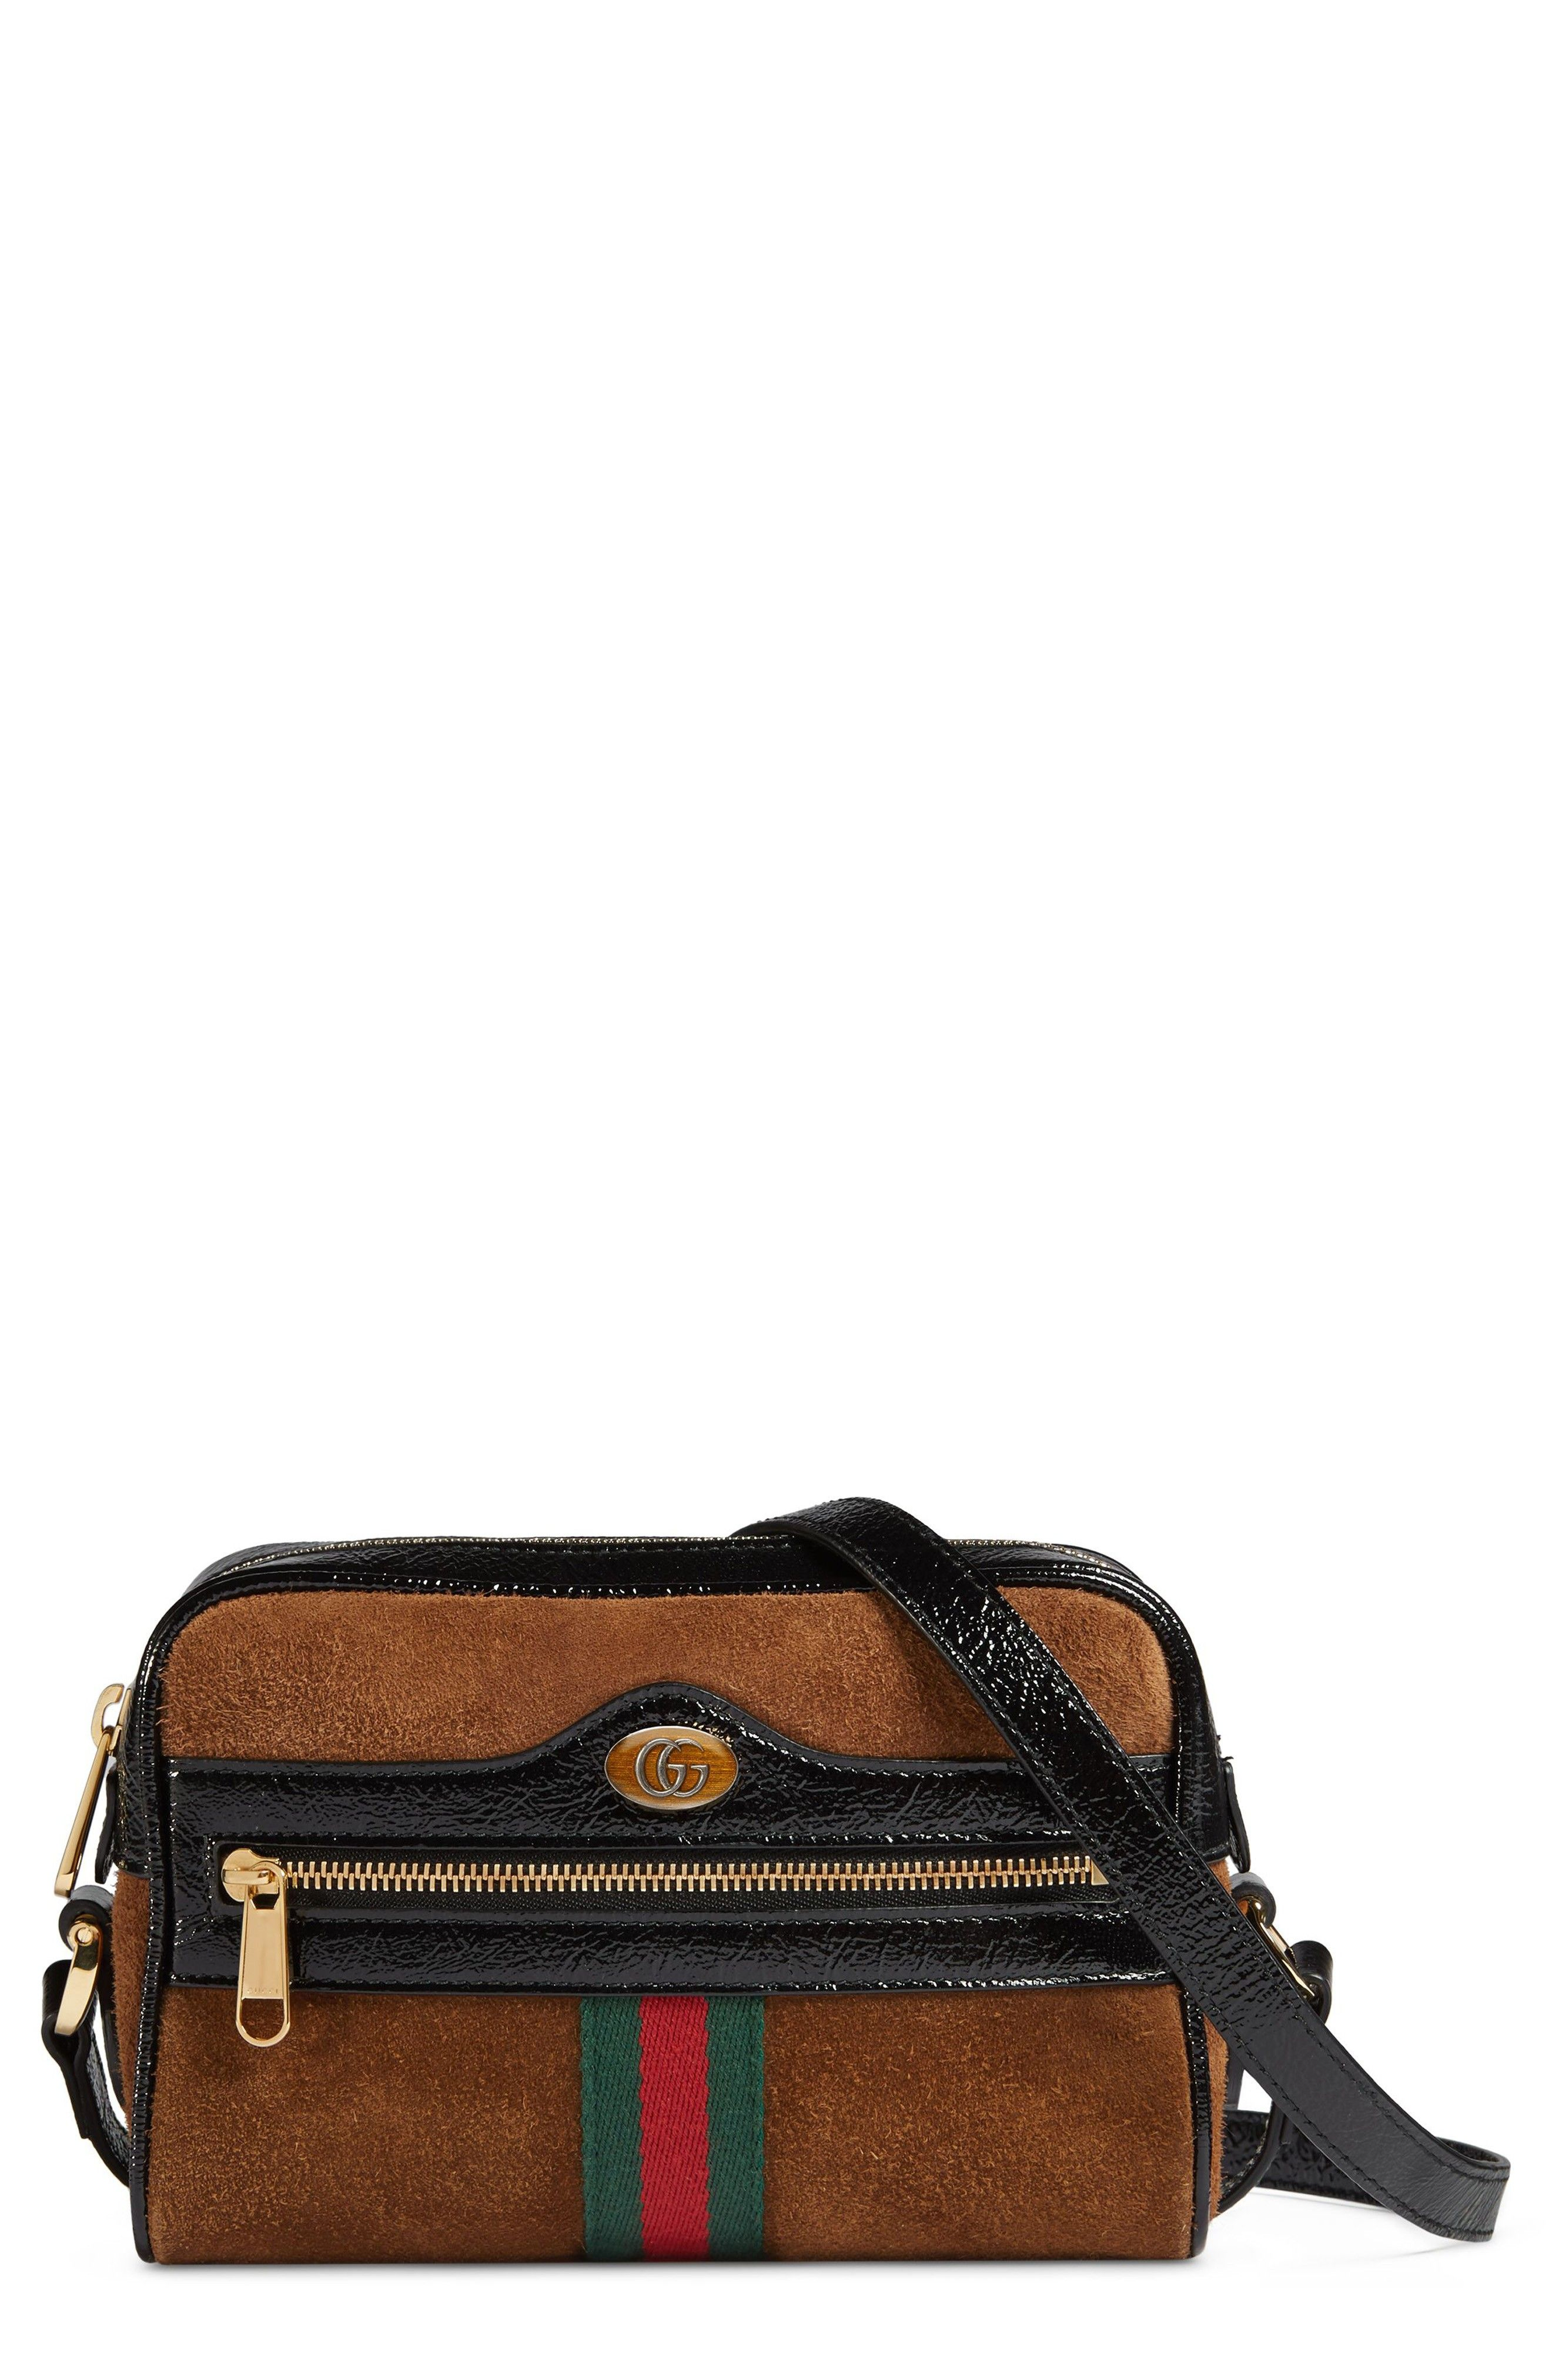 eaeb4c76aaa4 Ophidia Small Suede & Leather Crossbody Bag | Handbags | Leather ...